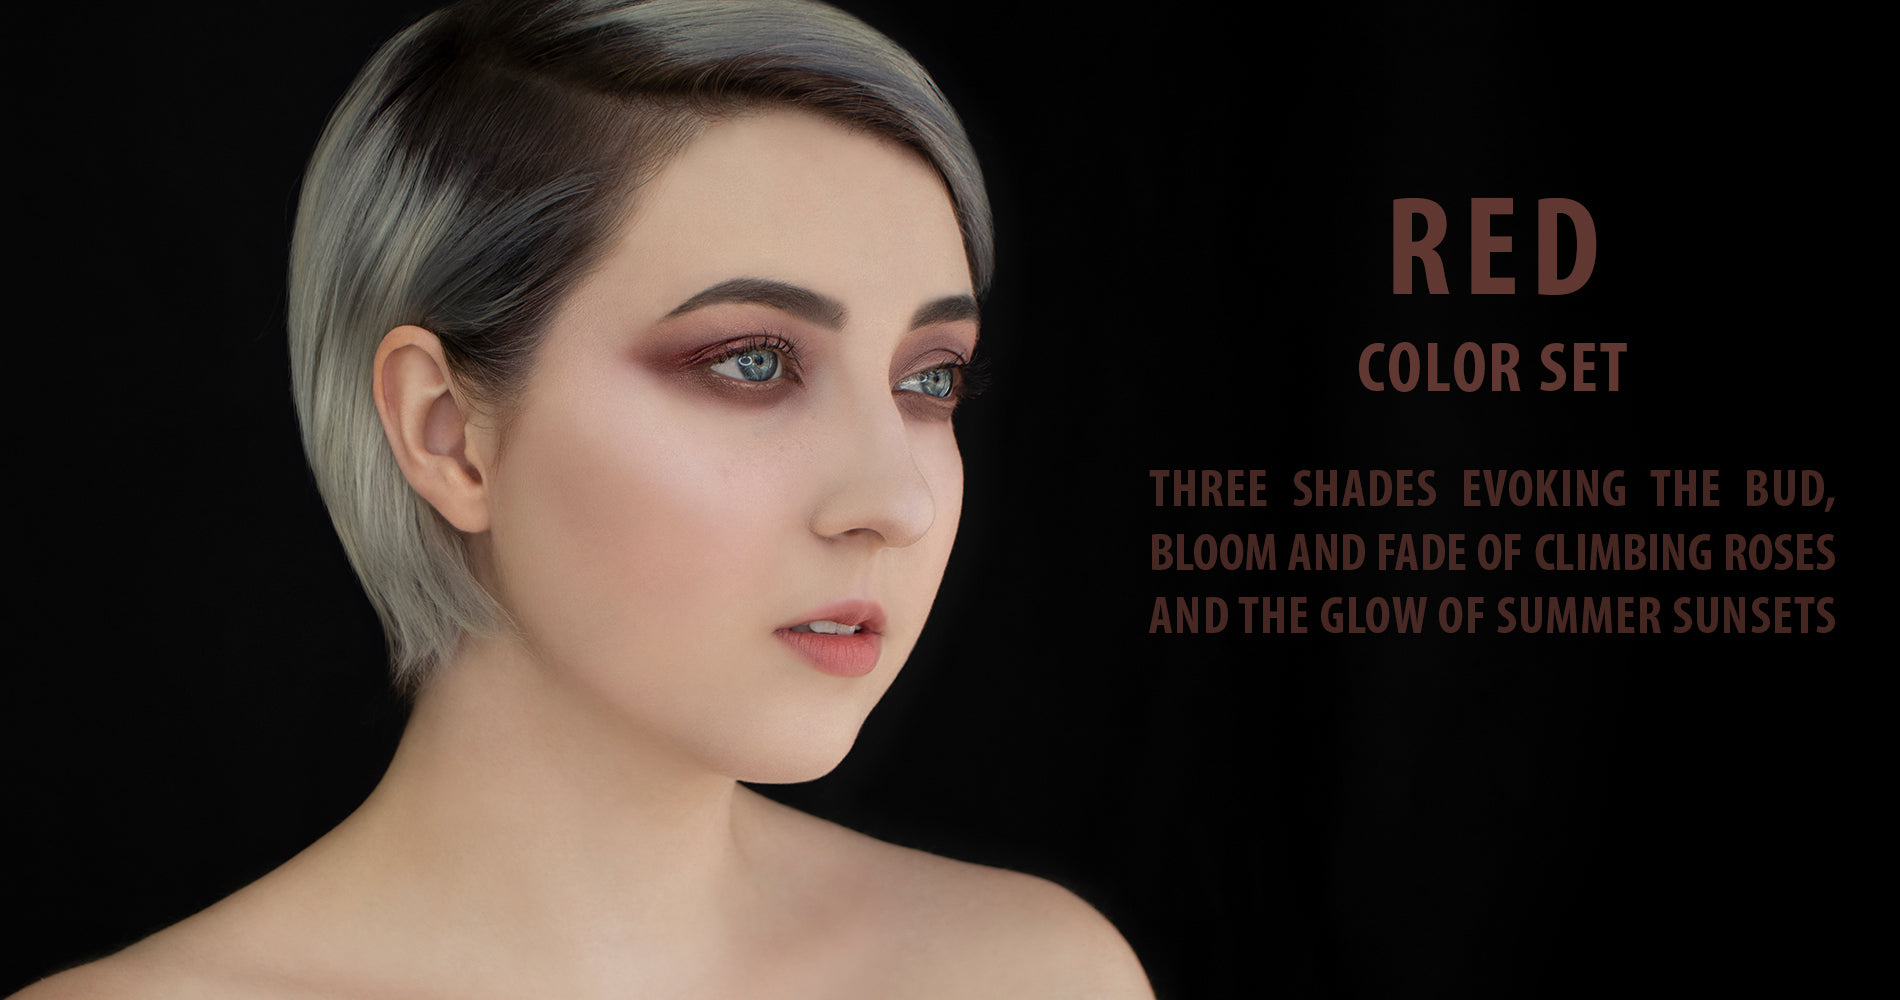 Rituel de Fille Red Color Set - Anima, Viscera and Exuviae Ash and Ember Eye Soot